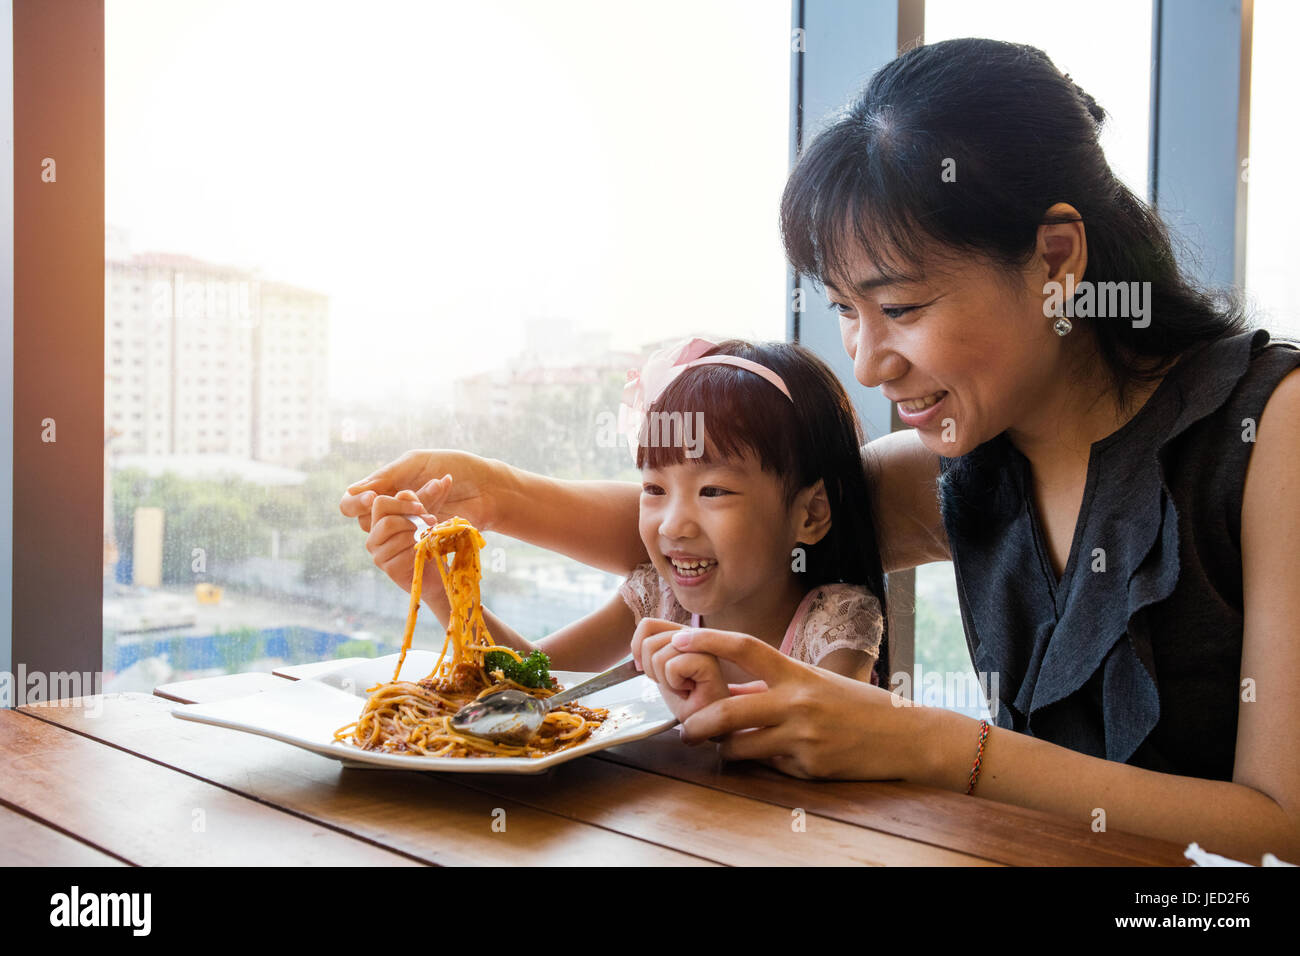 Chinois asiatique mother and daughter eating spaghetti bolognese au restaurant. Photo Stock